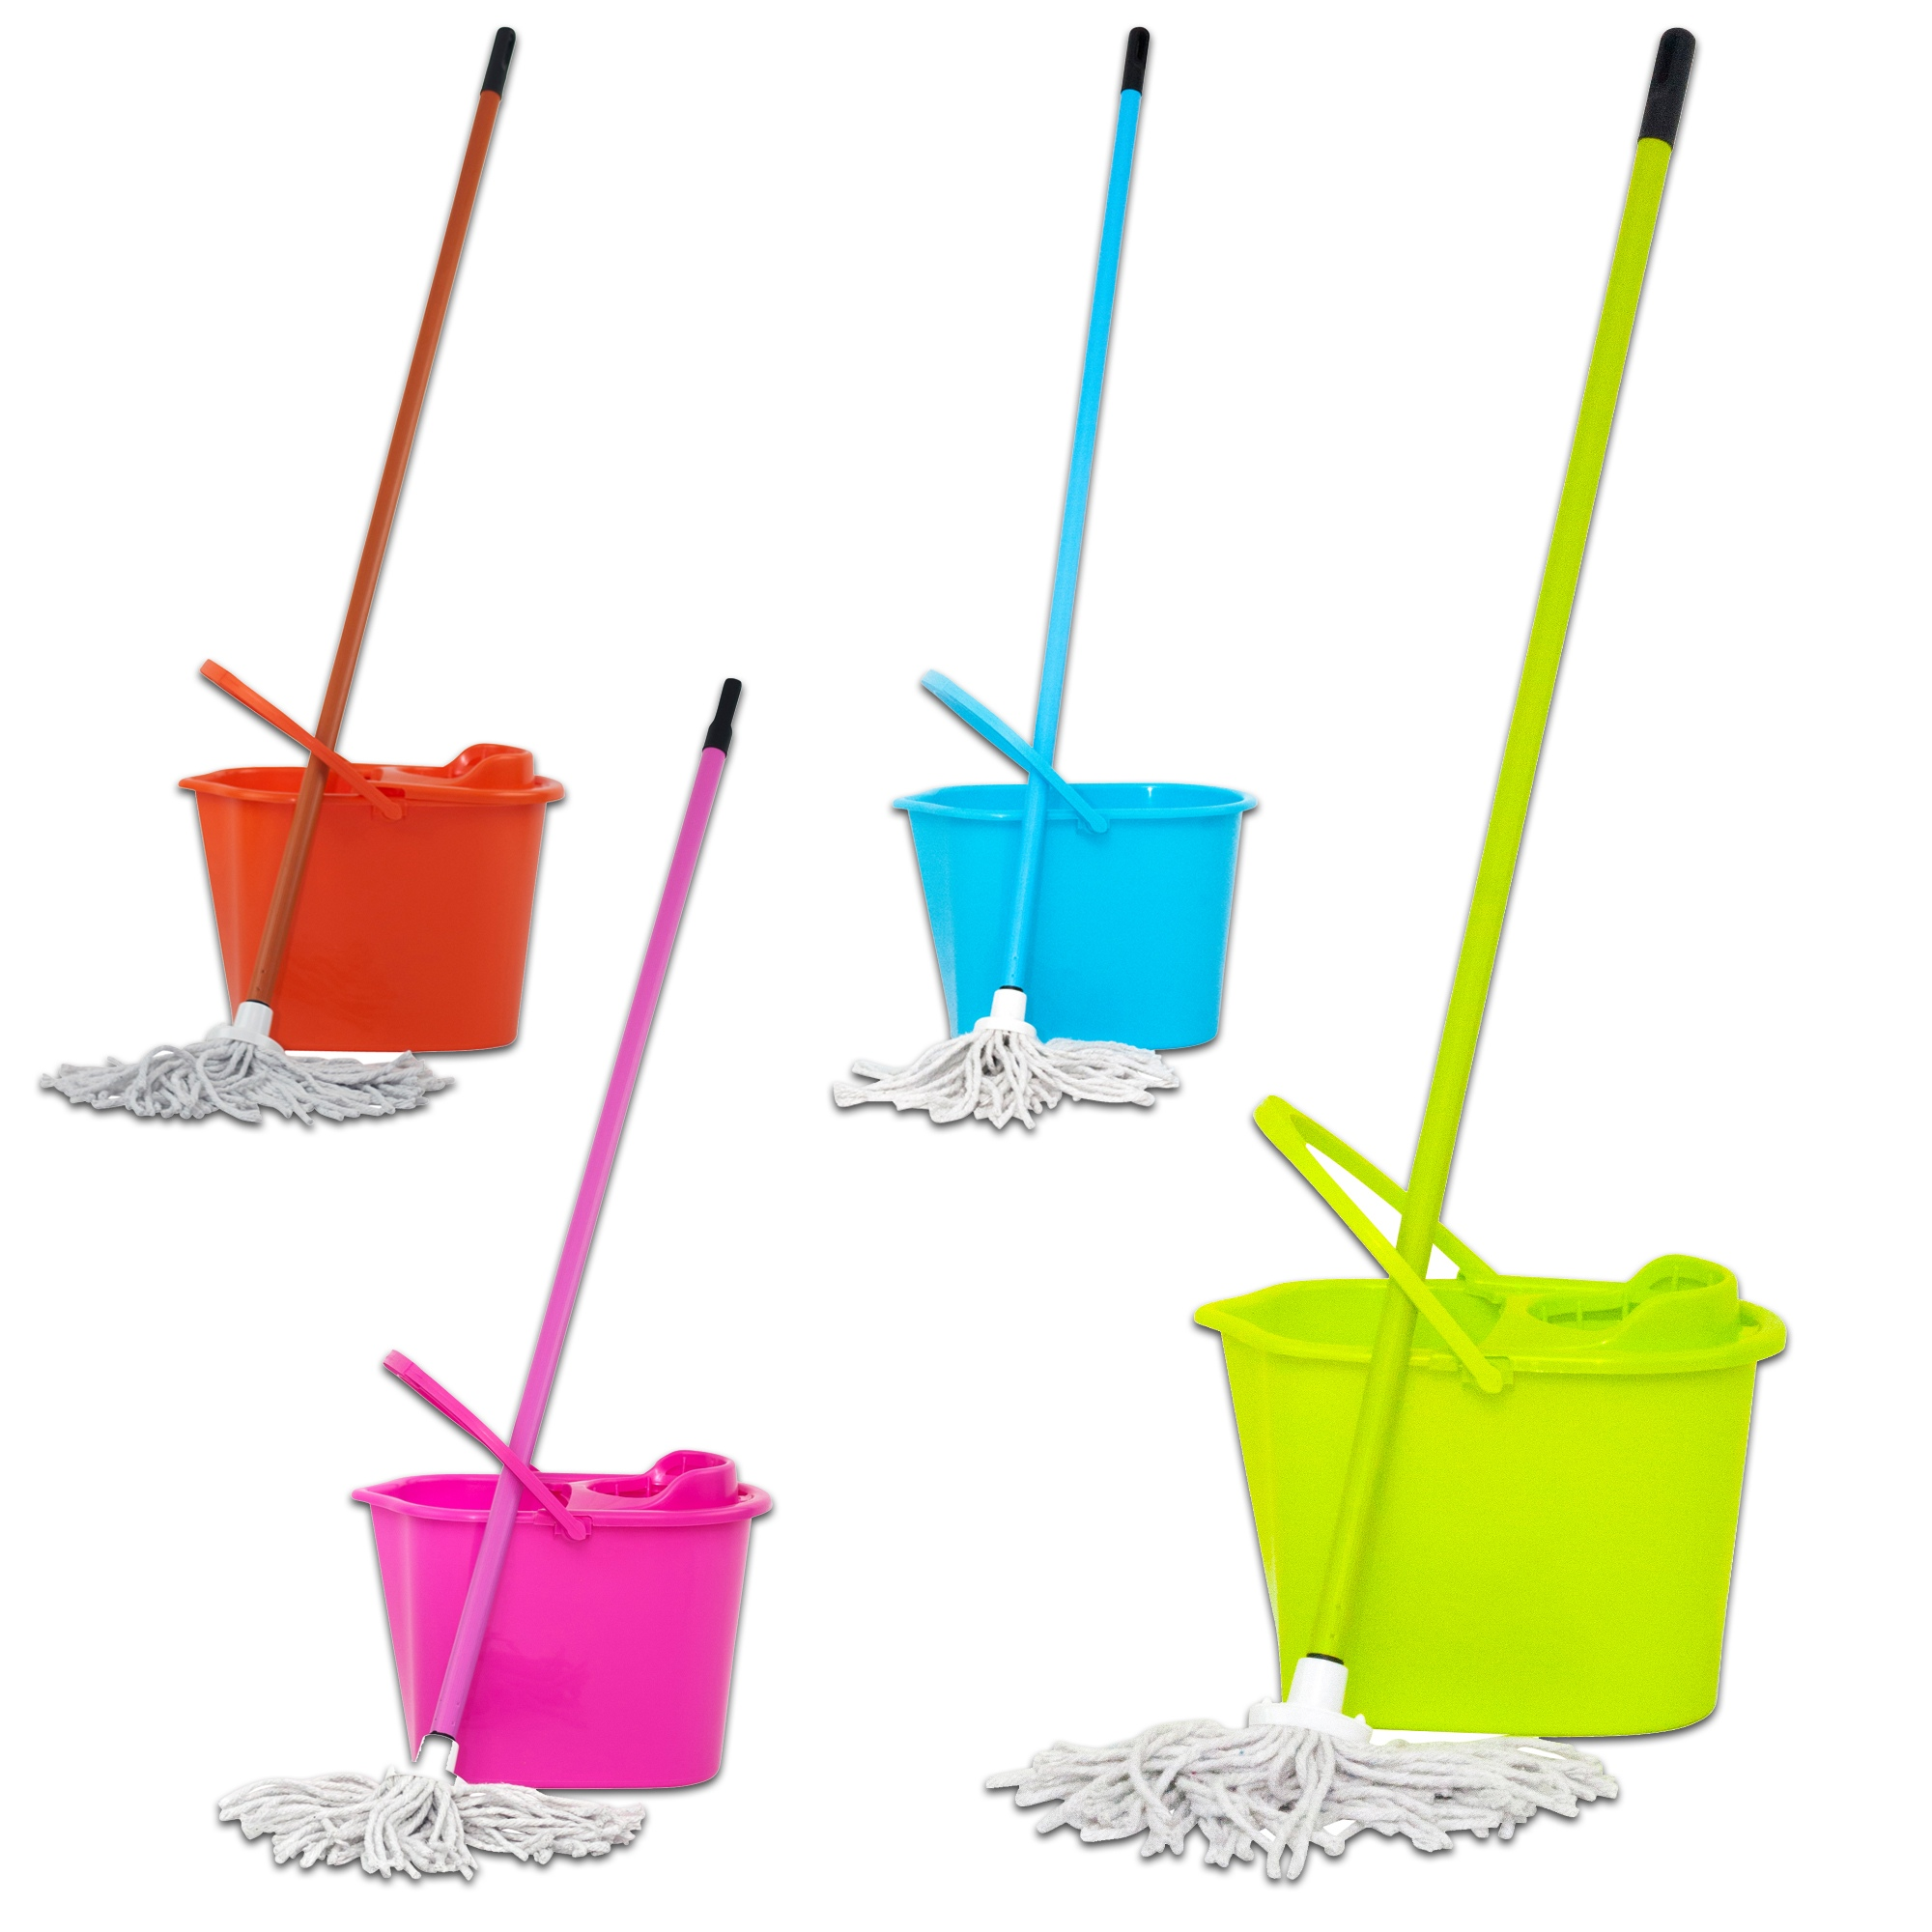 Mop And Bucket Home Cleaning Set Household Maintenance Tidy Floor Wash